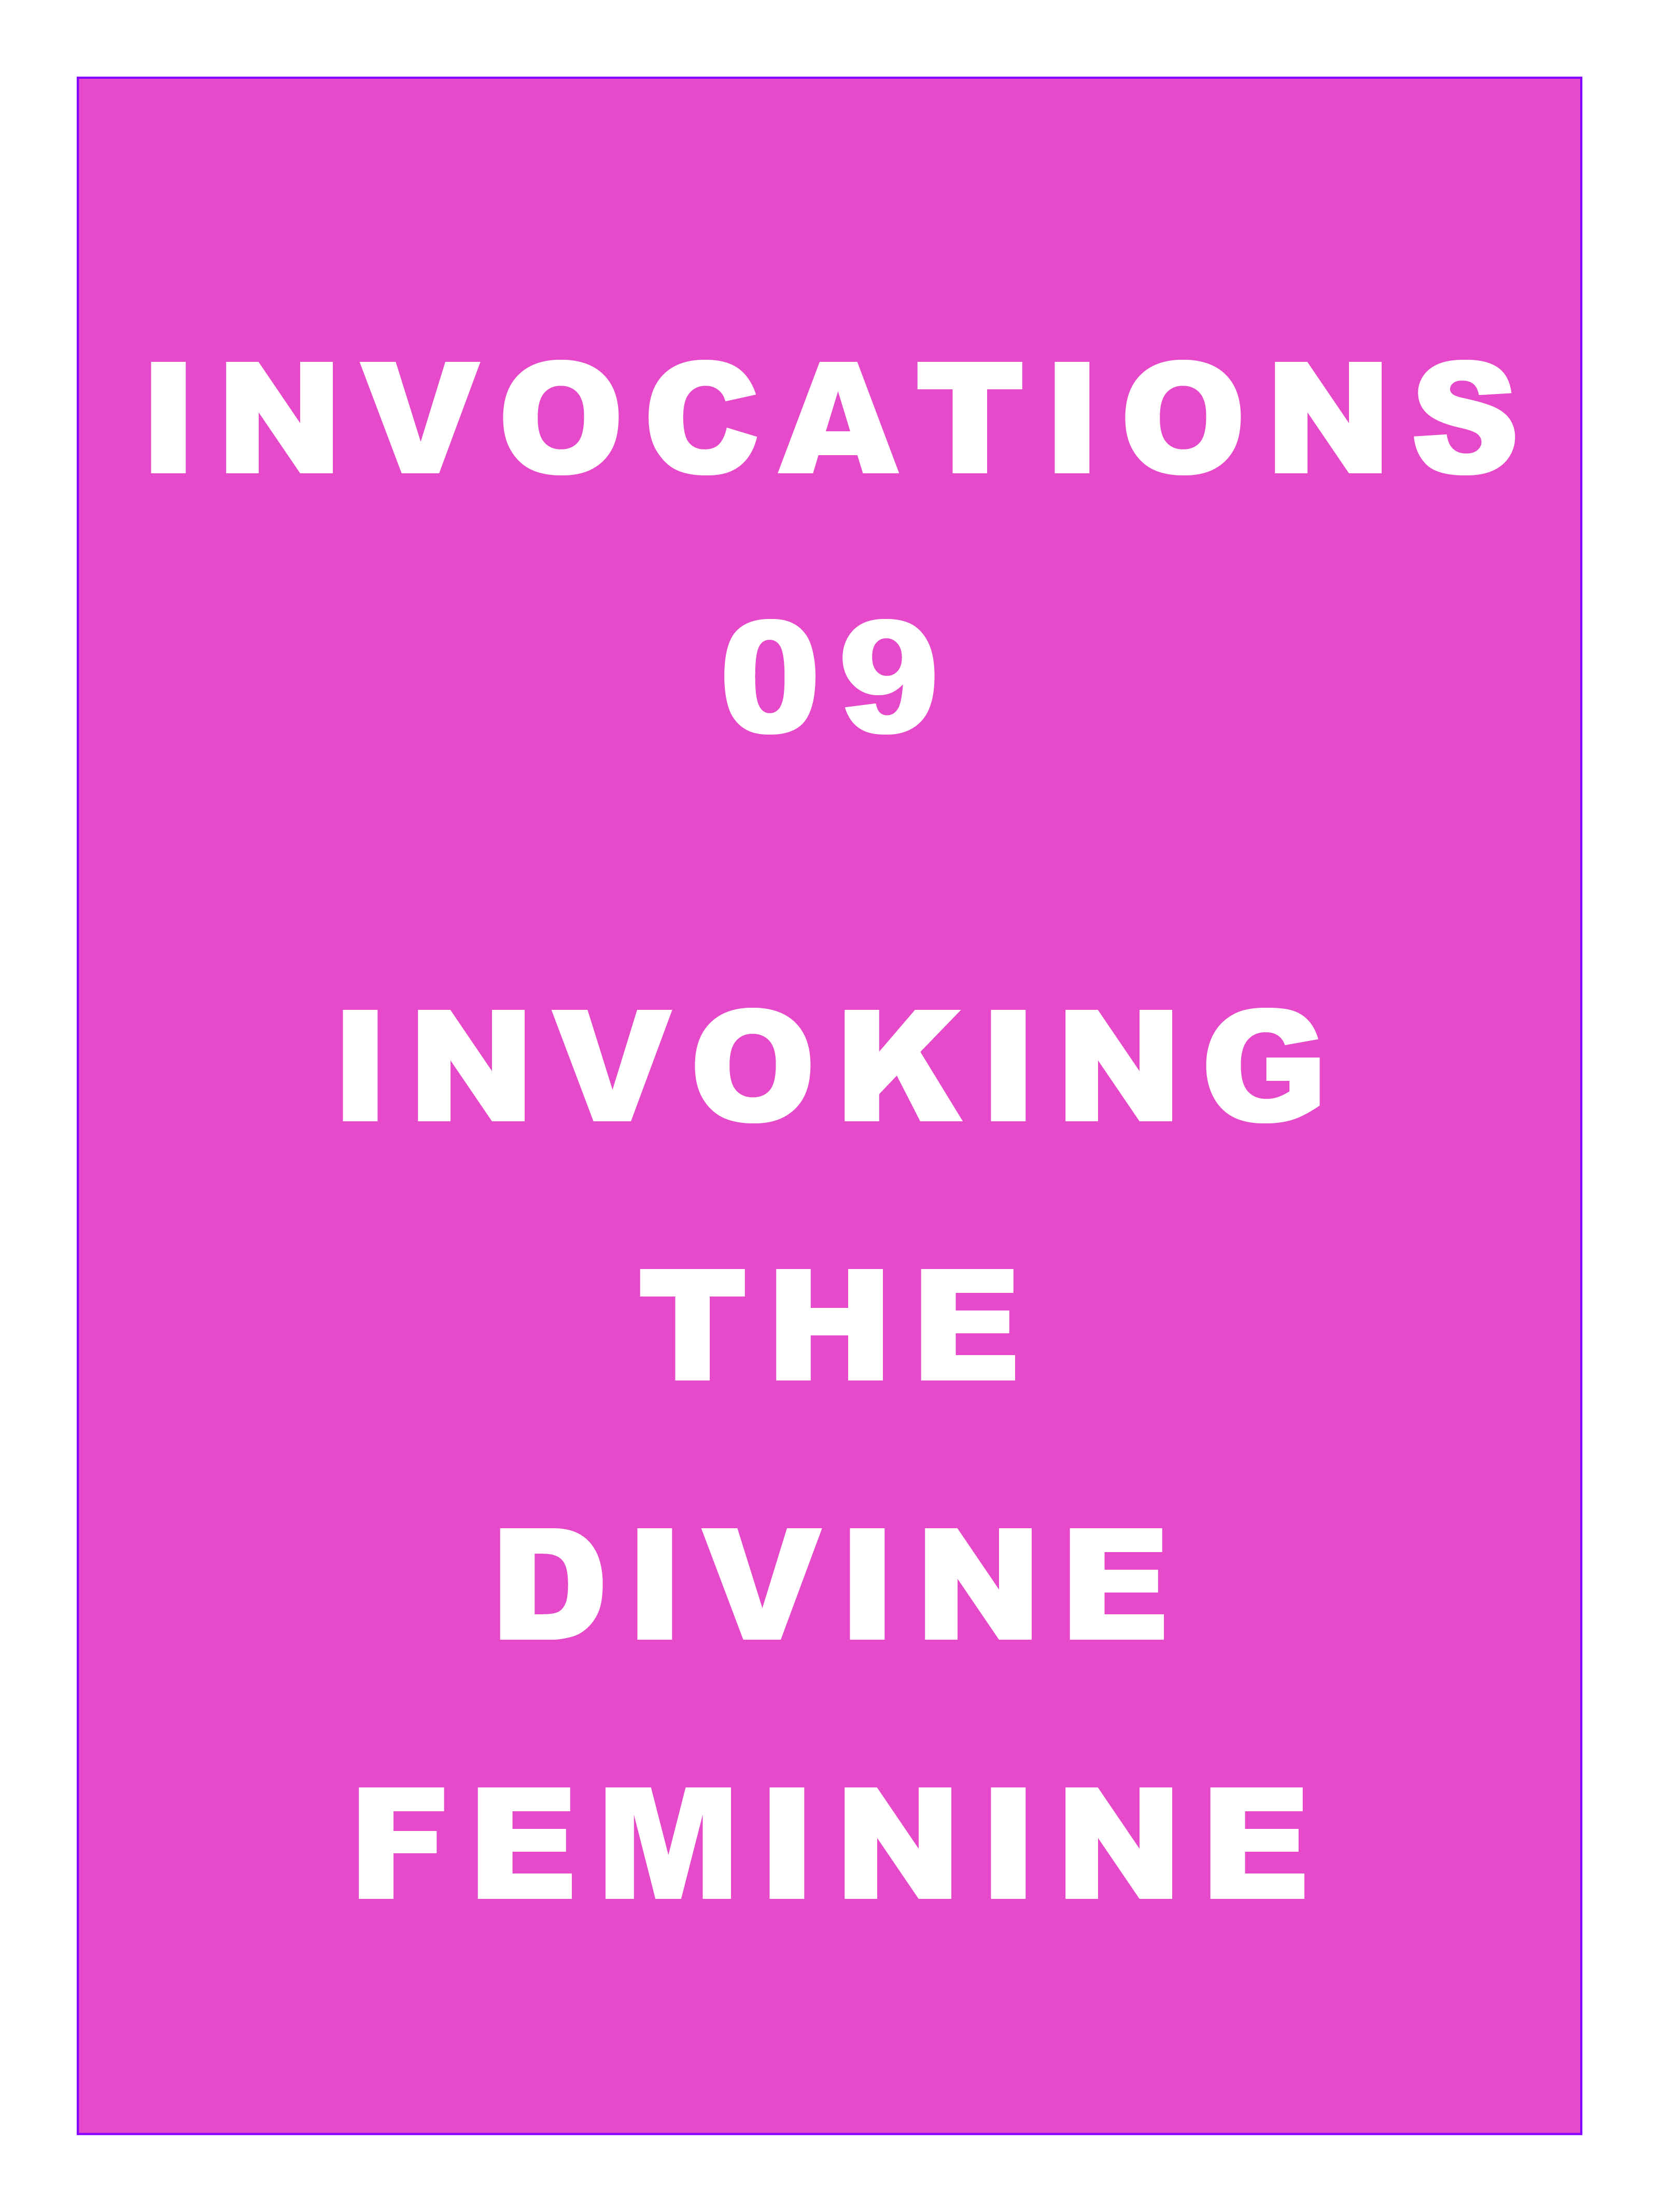 Invocations 09: Invoking the Divine Feminine